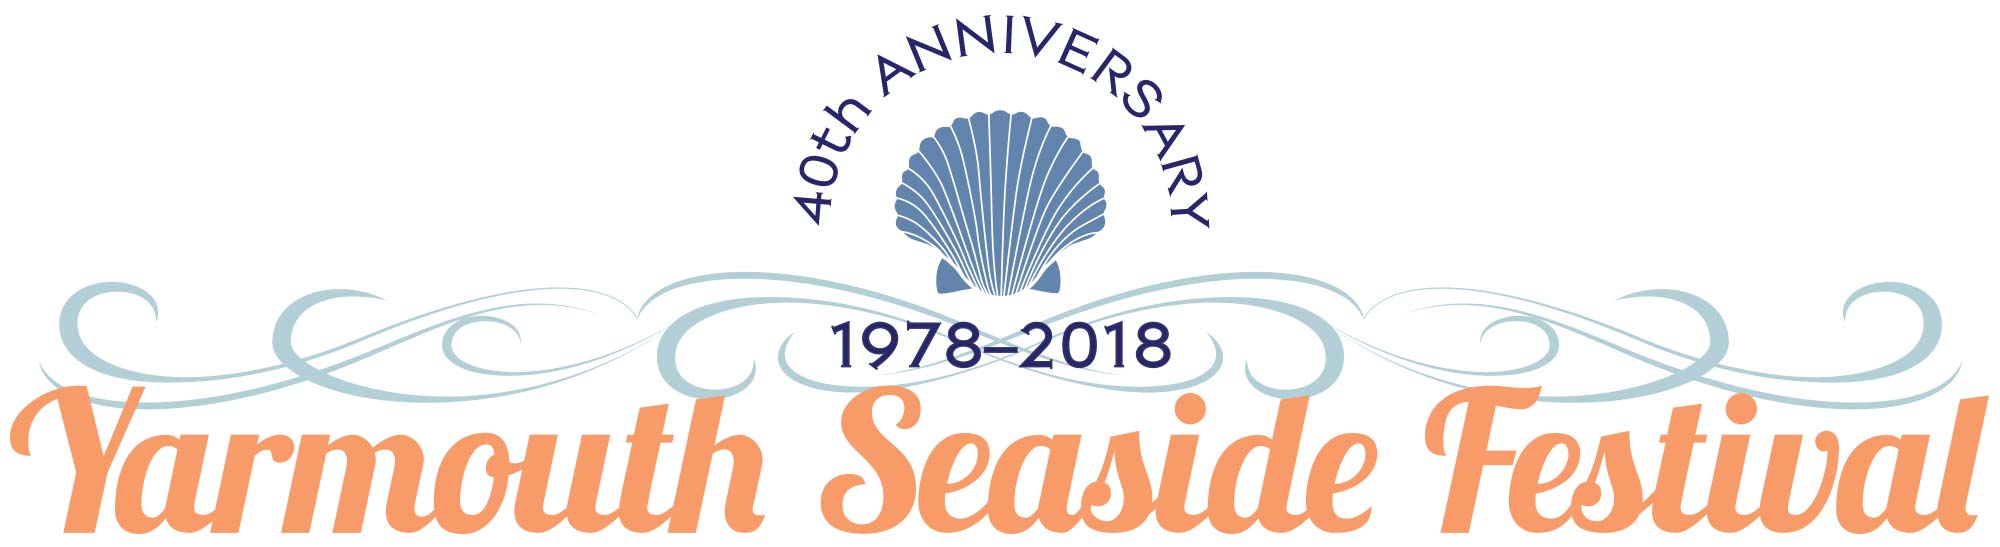 Logo for the 40th Anniversary Yarmouth Seaside Festival